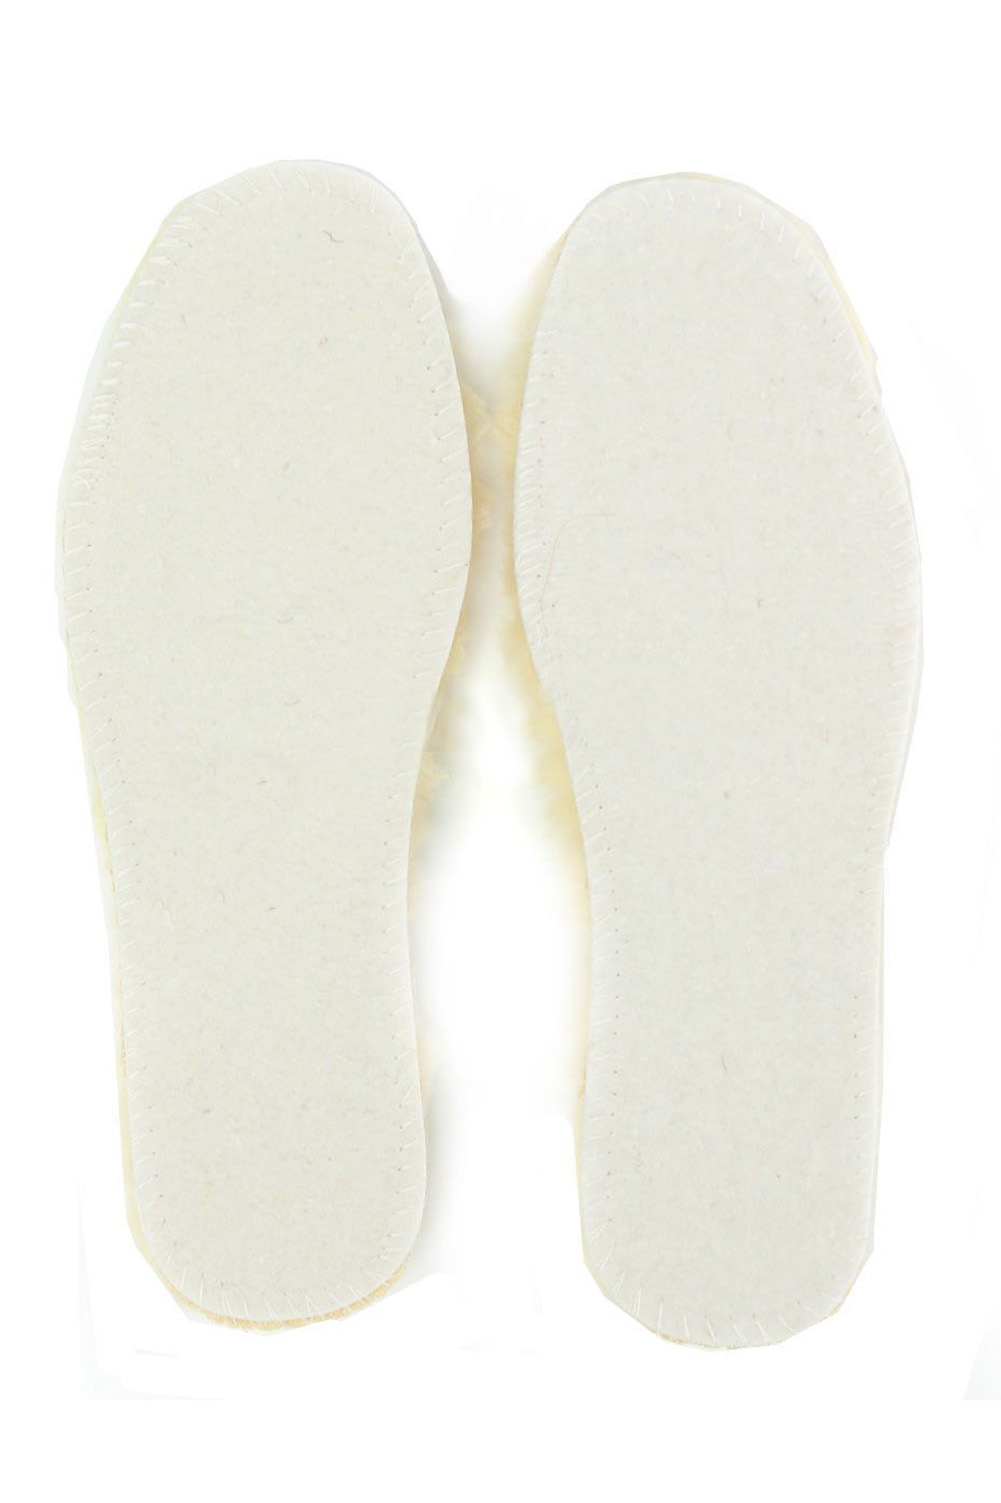 Men Women Insoles Pads Replacement For Winter Shoes Boots